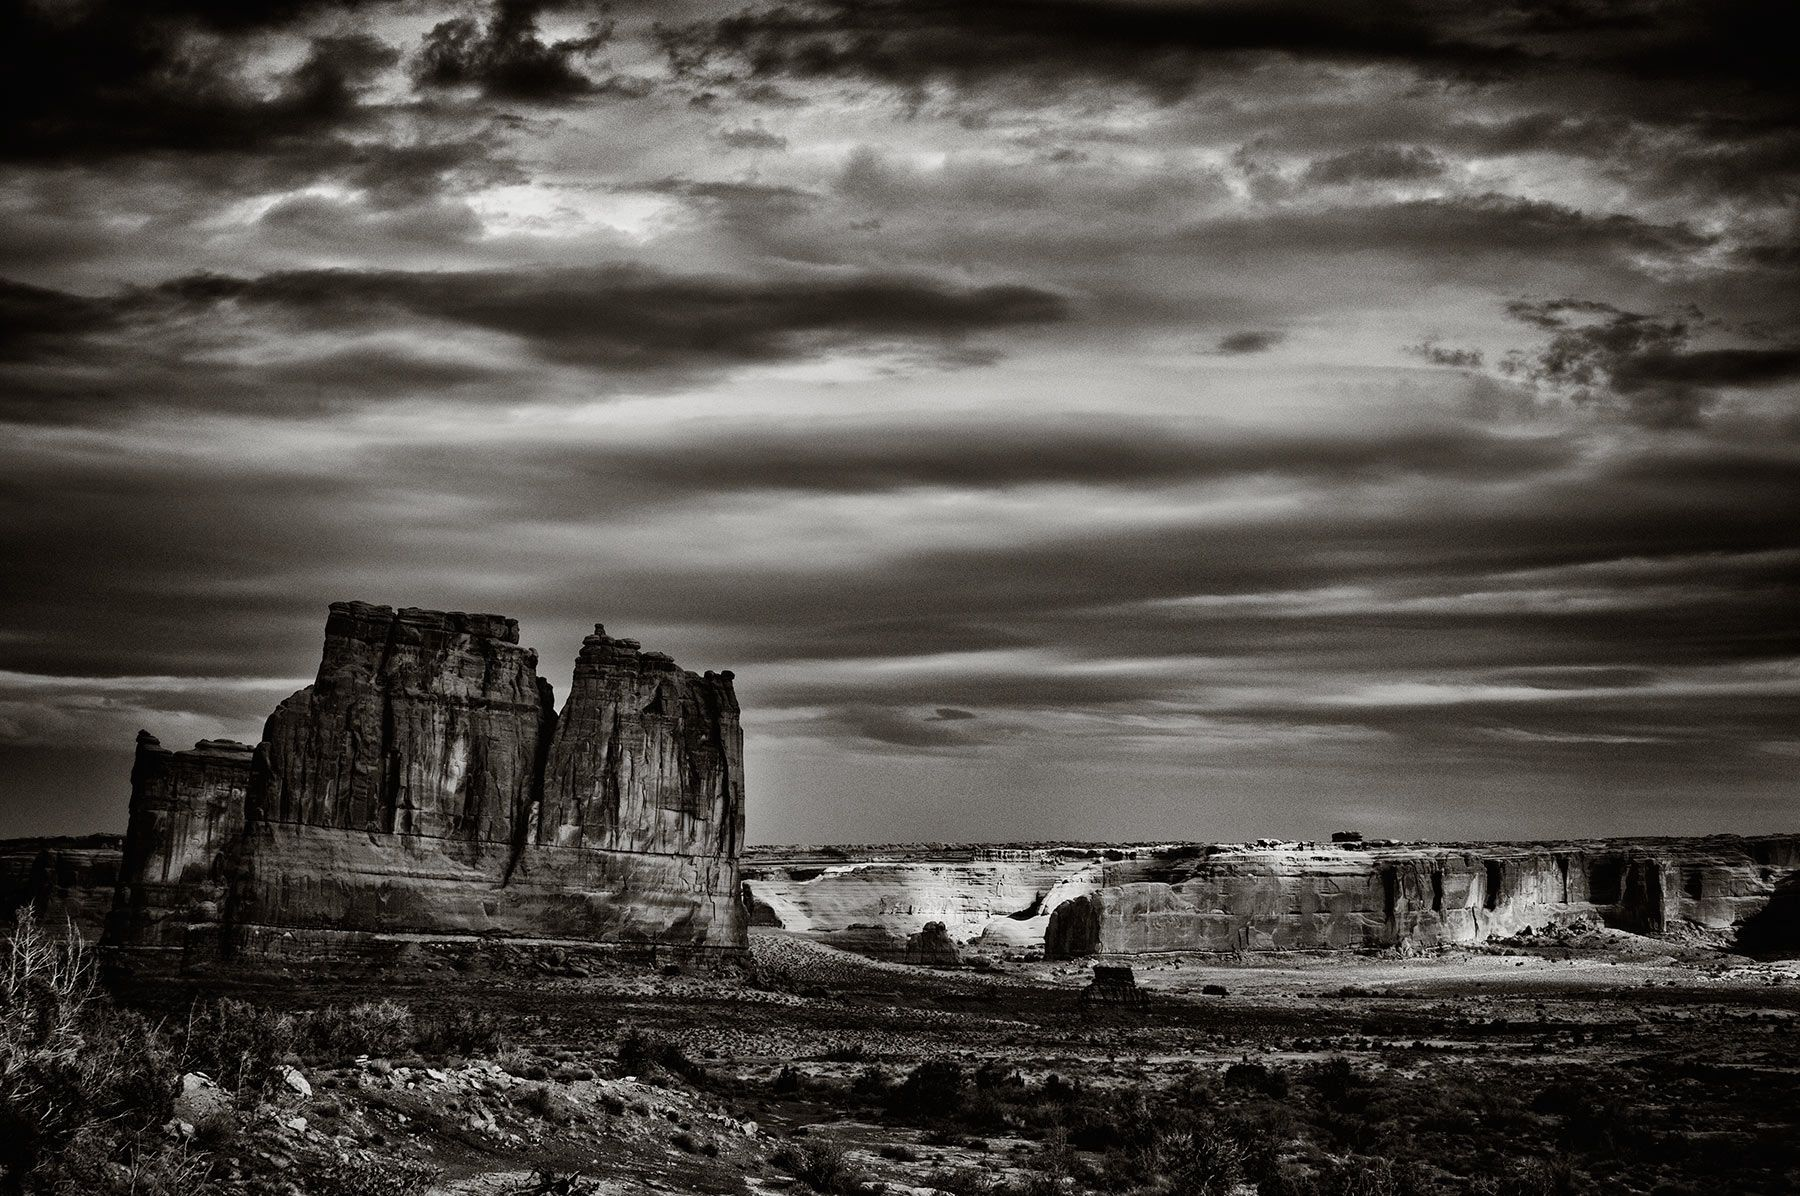 Moab Utah, Arches National Park